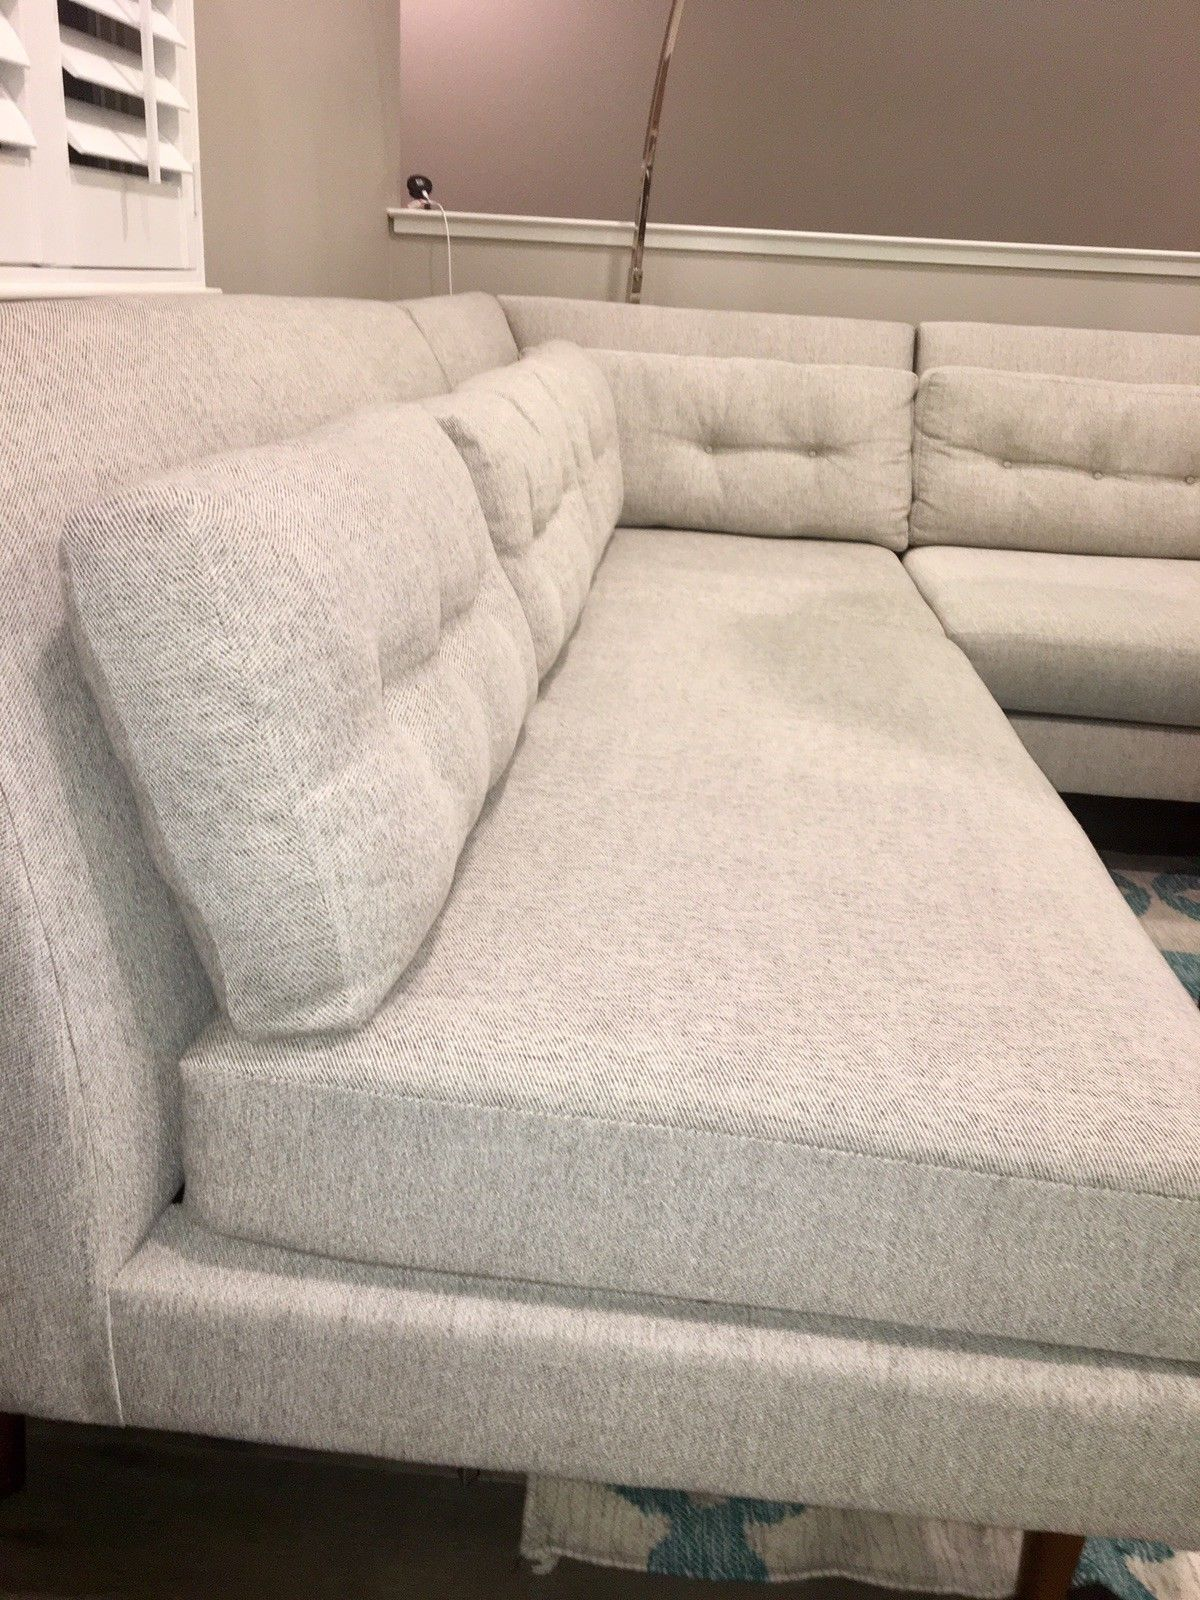 1750 00 Crosby Sectional Sofa From West Elm In Twill Stone Color Crosby Sectional Style Designers Organizing Archit Sectional Sofa Sofa Sectional